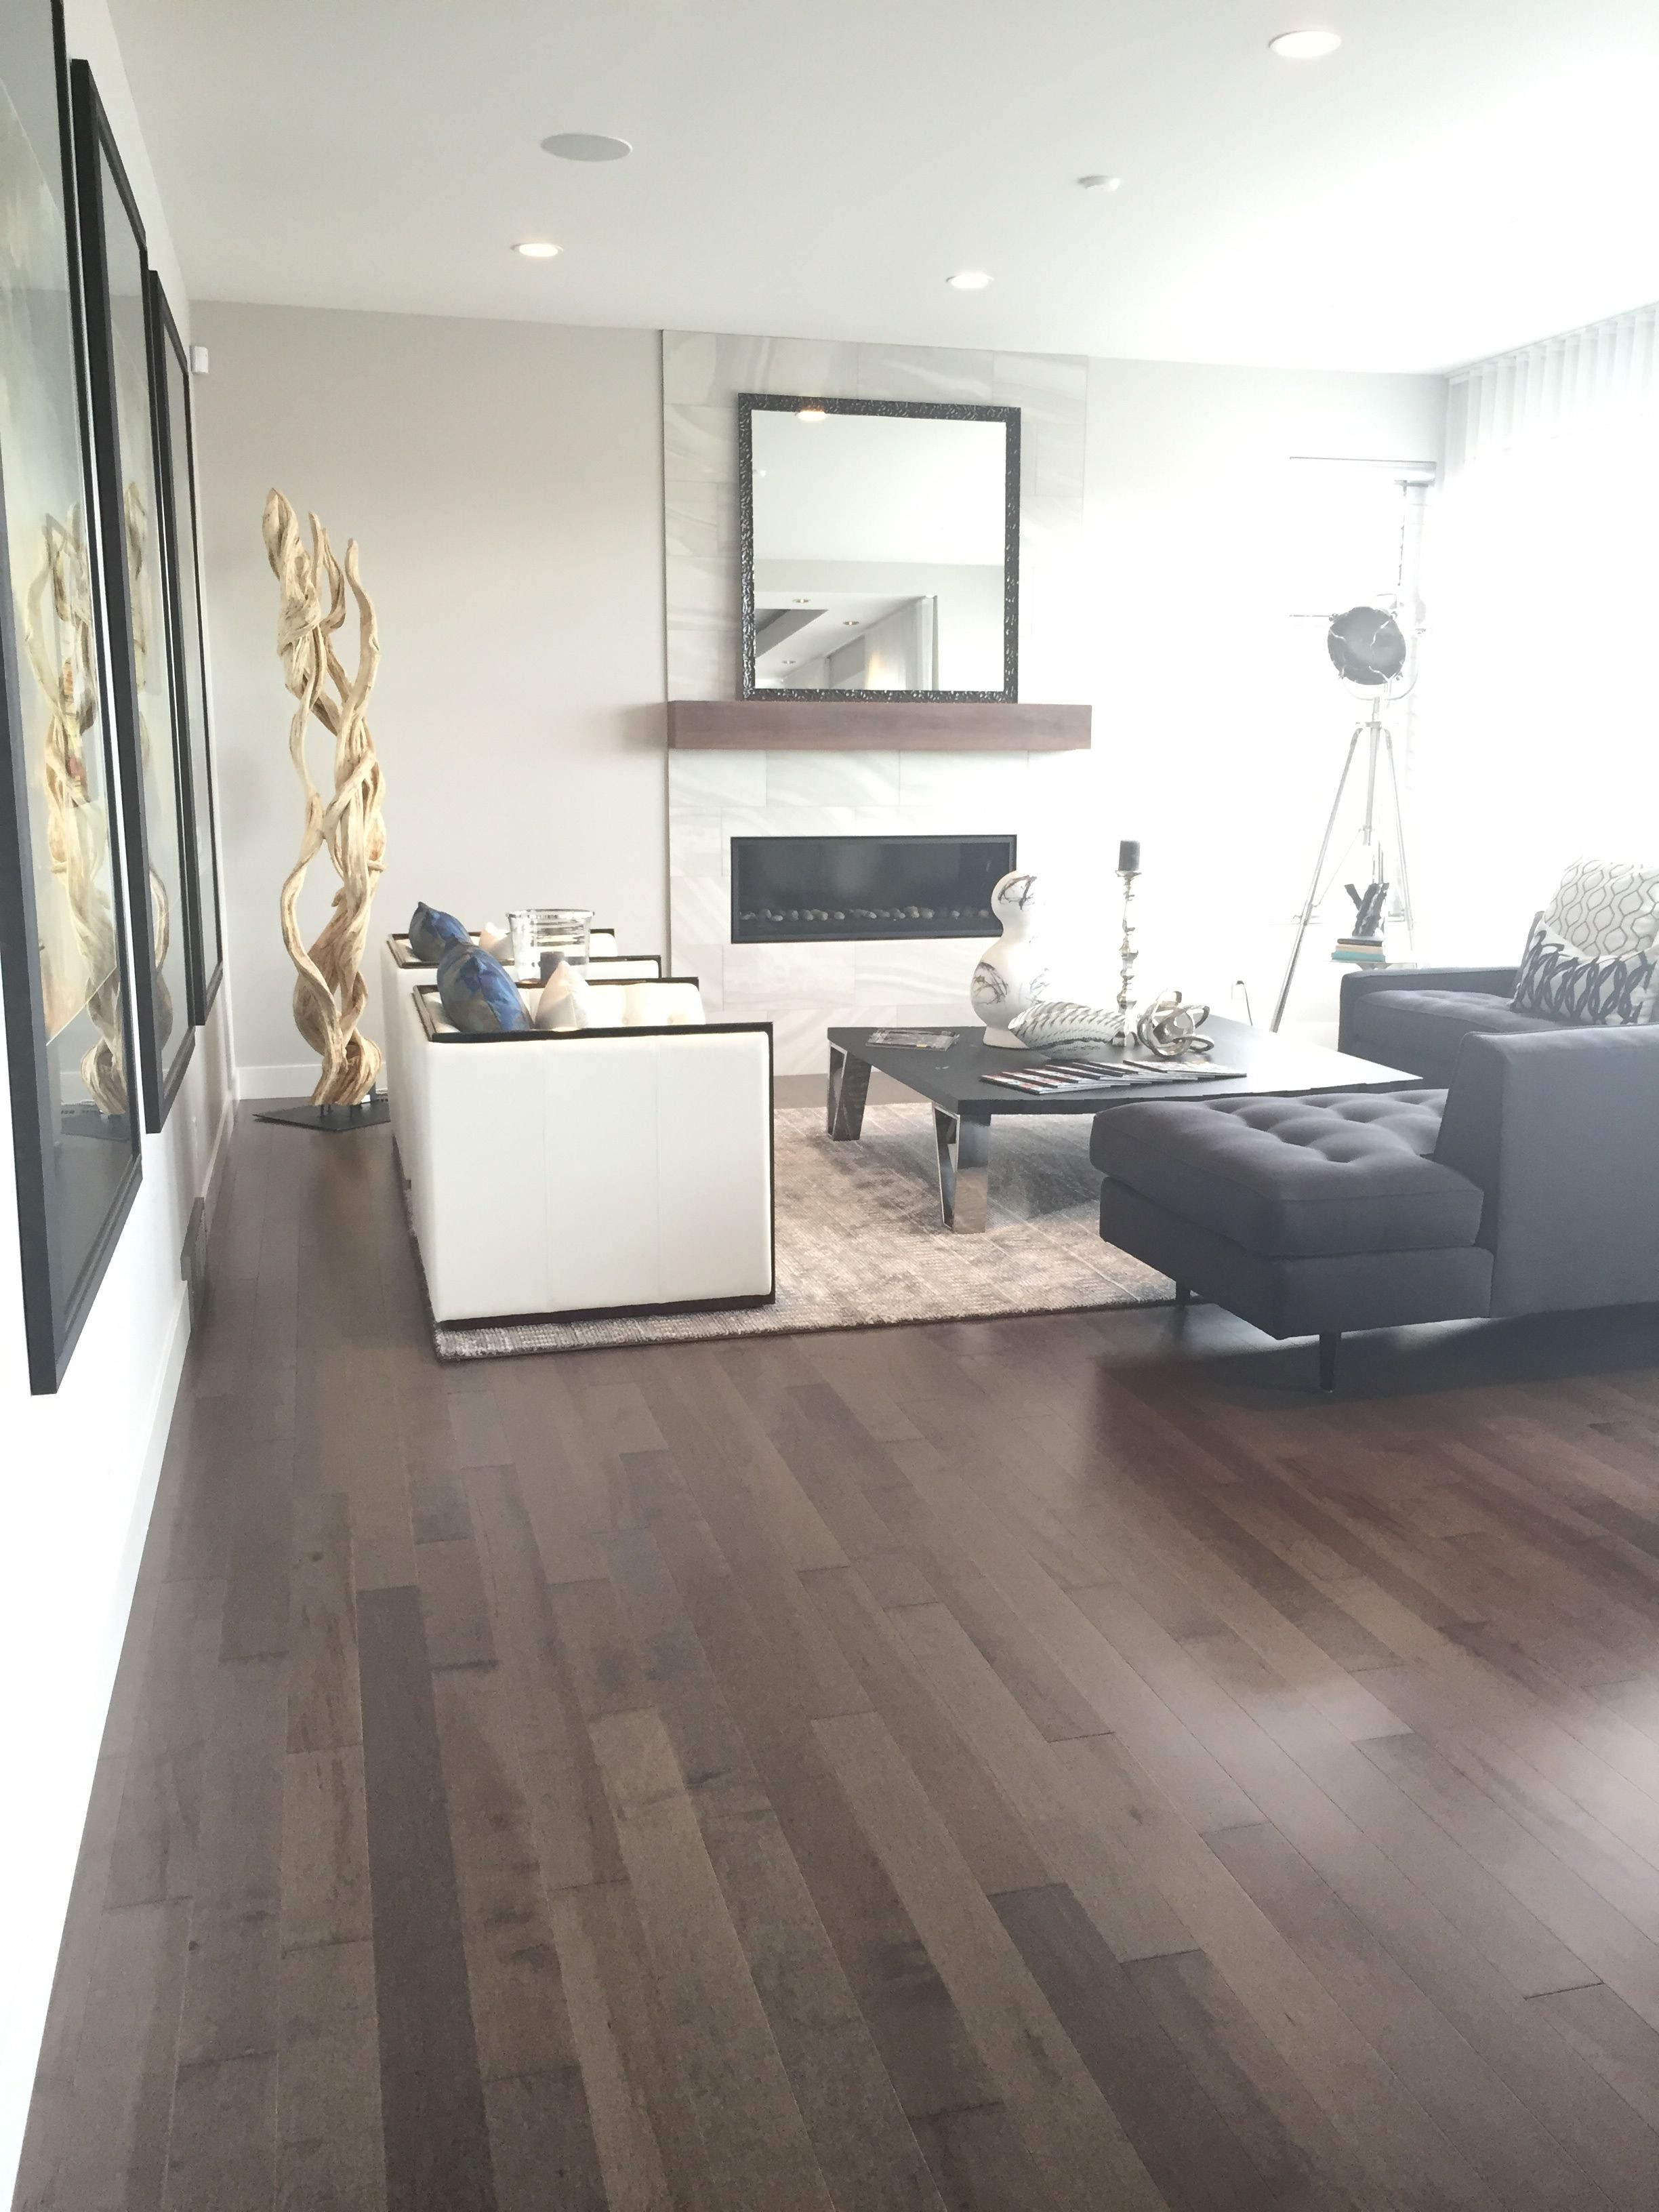 nashville hardwood floor care llc of smoky grey essential hard maple tradition lauzon hardwood pertaining to beautiful living room from the cantata showhome featuring lauzons smokey grey hard maple hardwood flooring from the essential collection